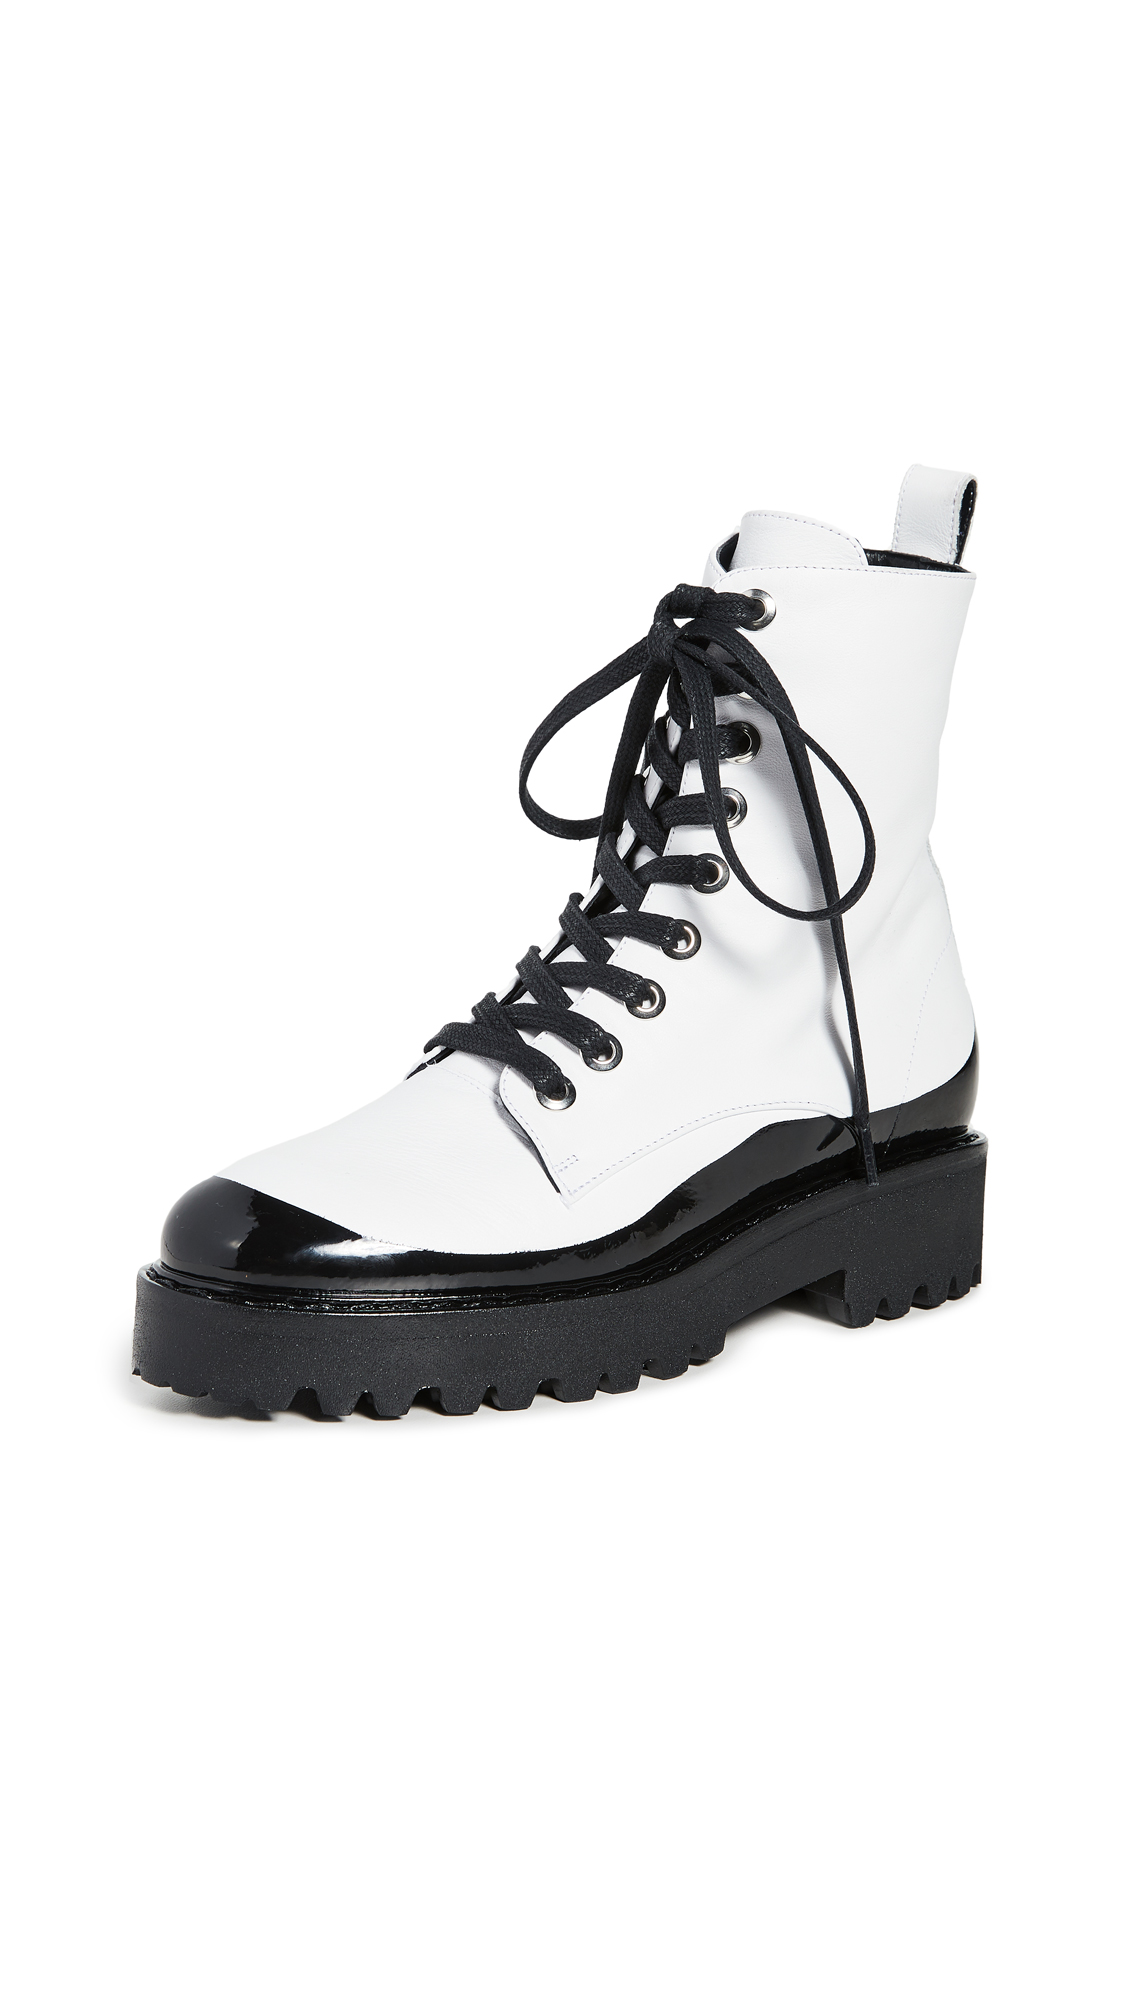 No. 21 Lace Up Boots – 60% Off Sale